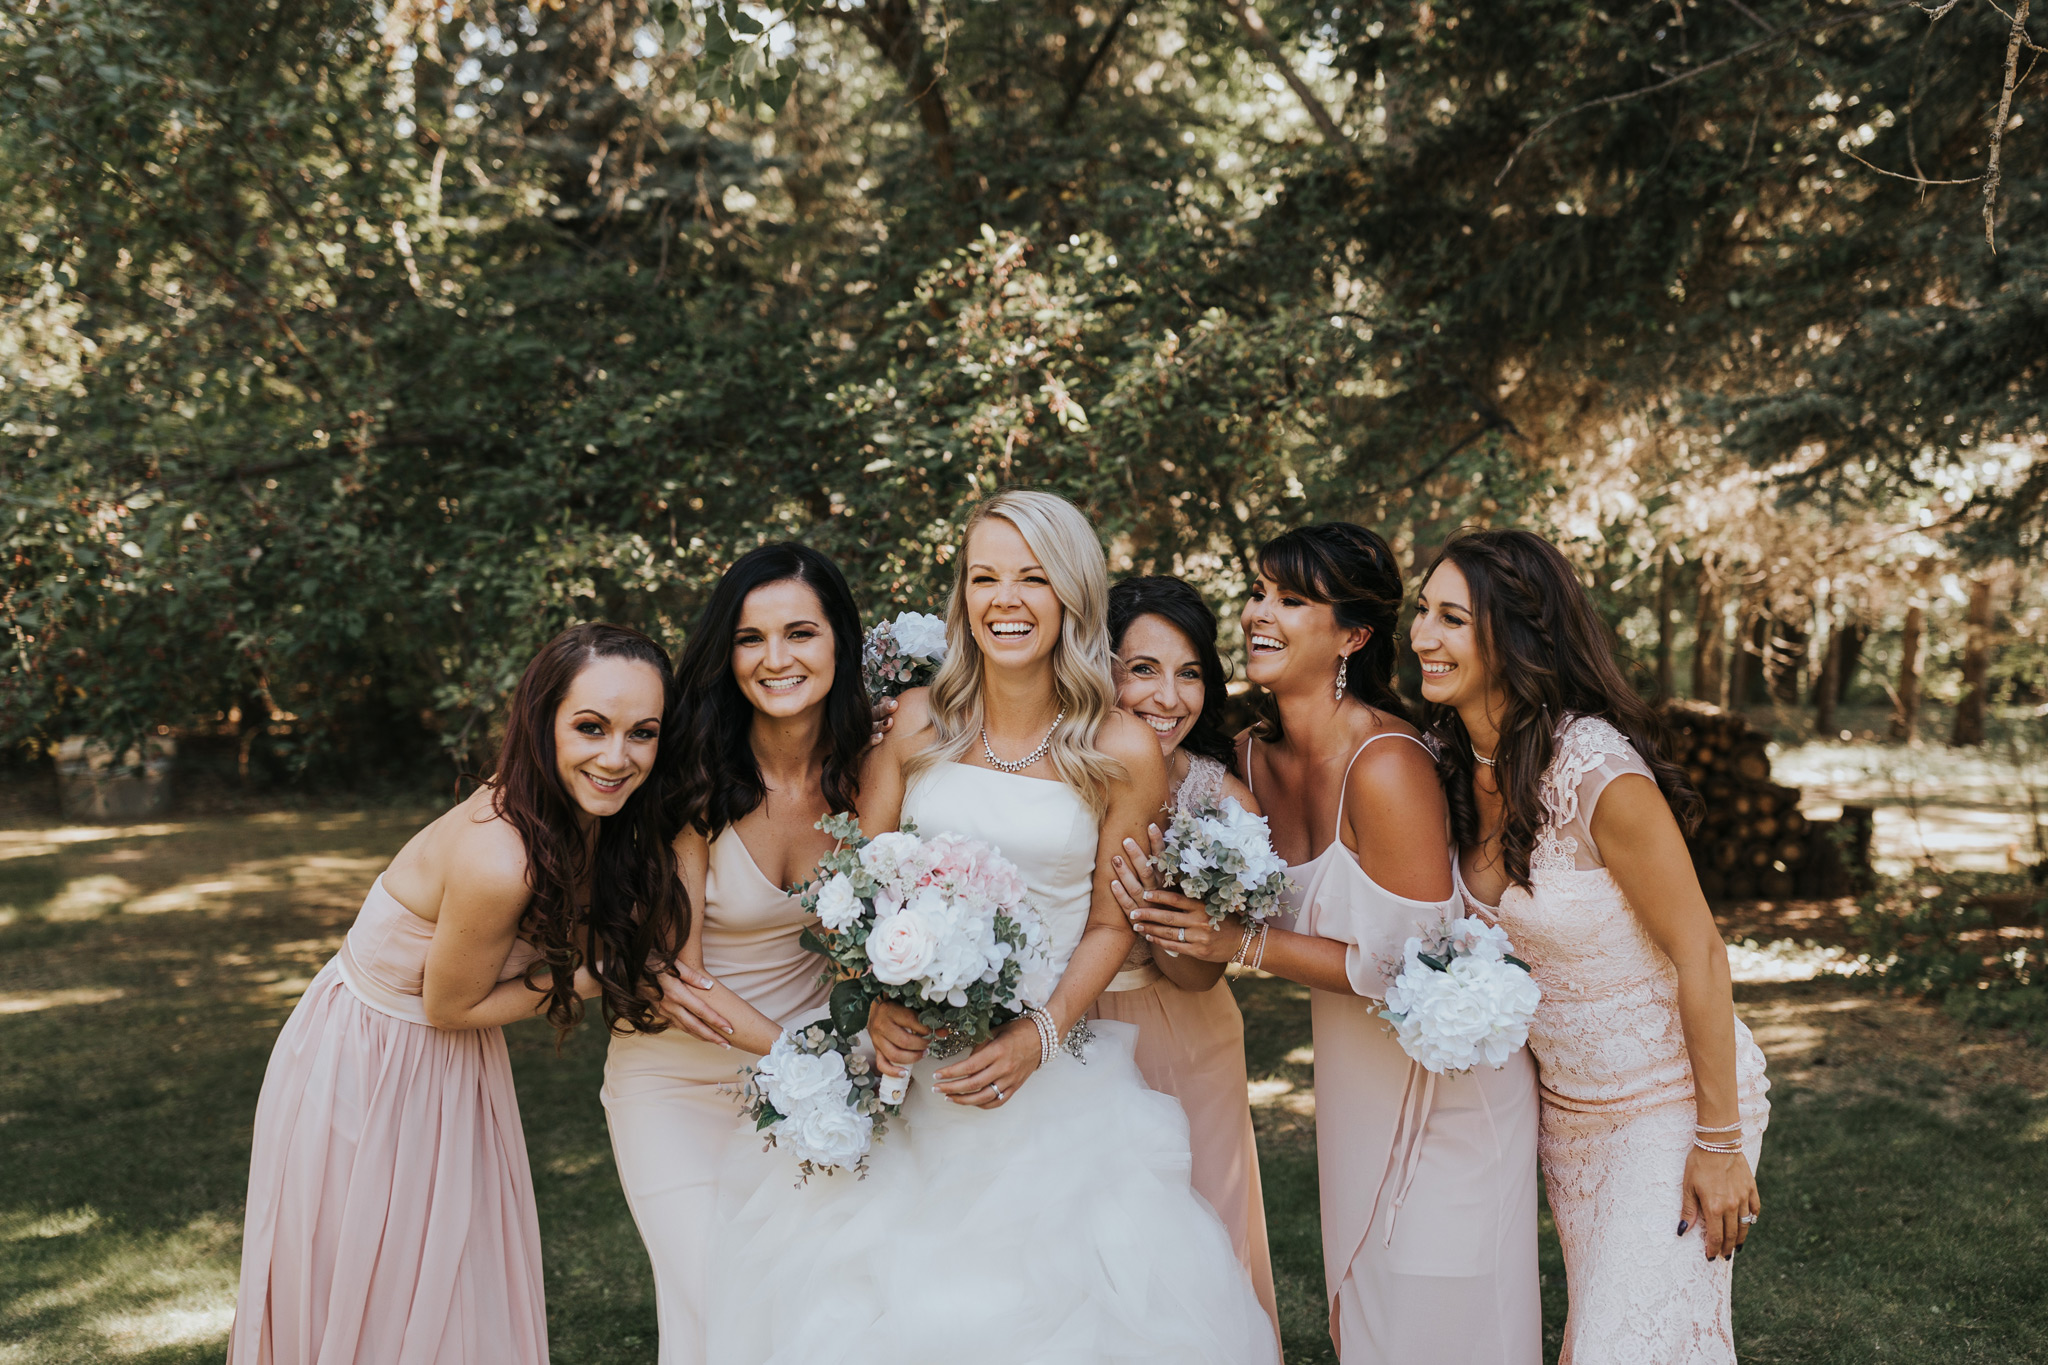 bridesmaids laughing and smiling with bride